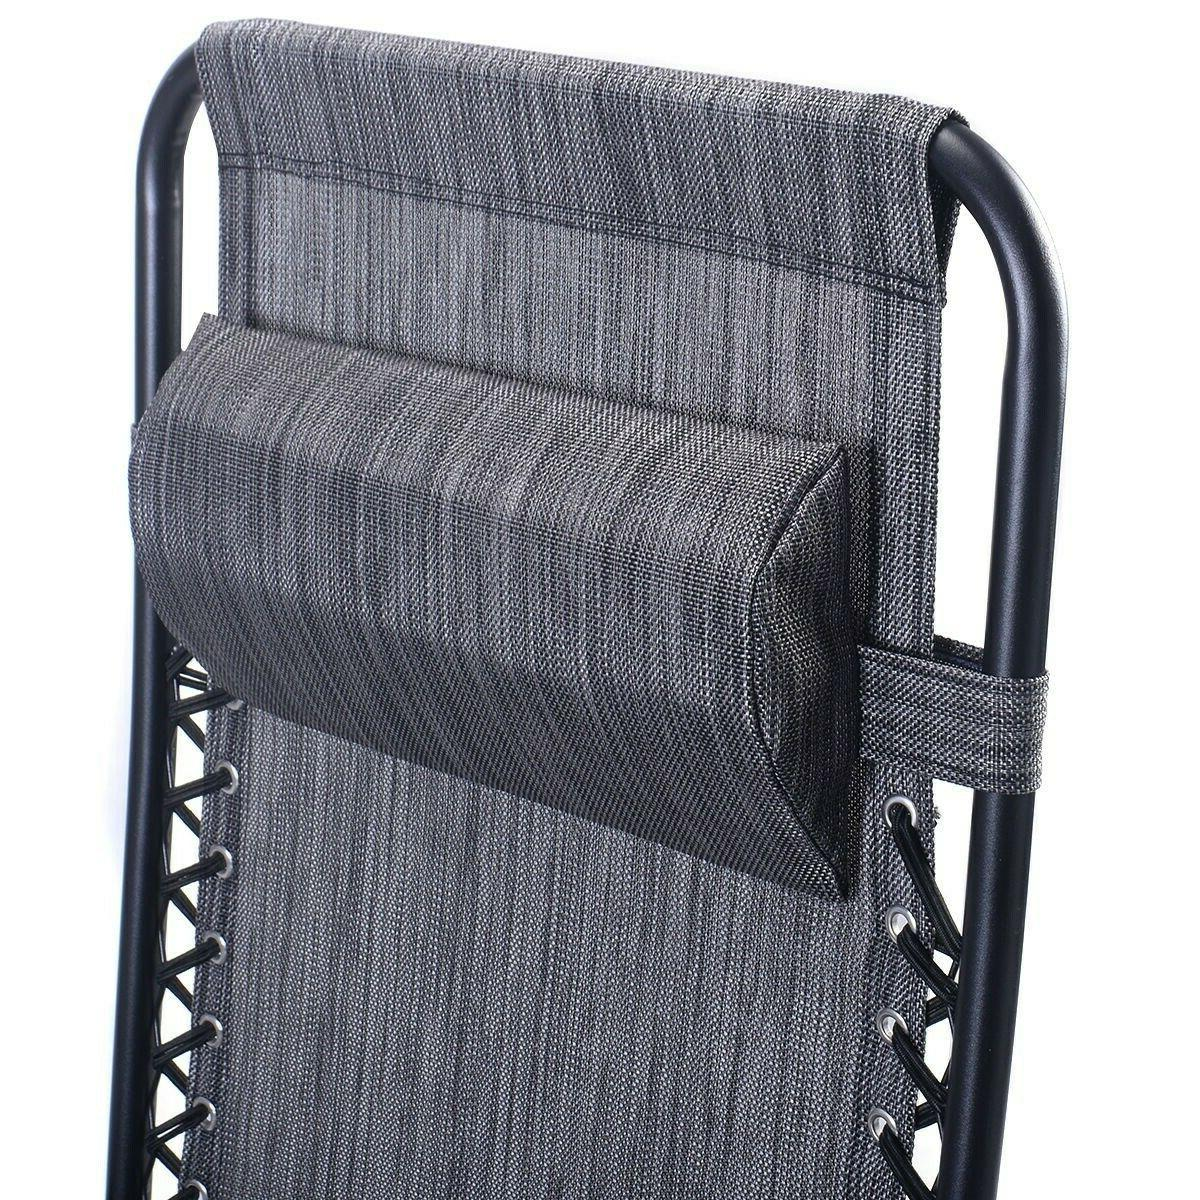 Folding Chairs Lounge Patio Chairs Outdoor